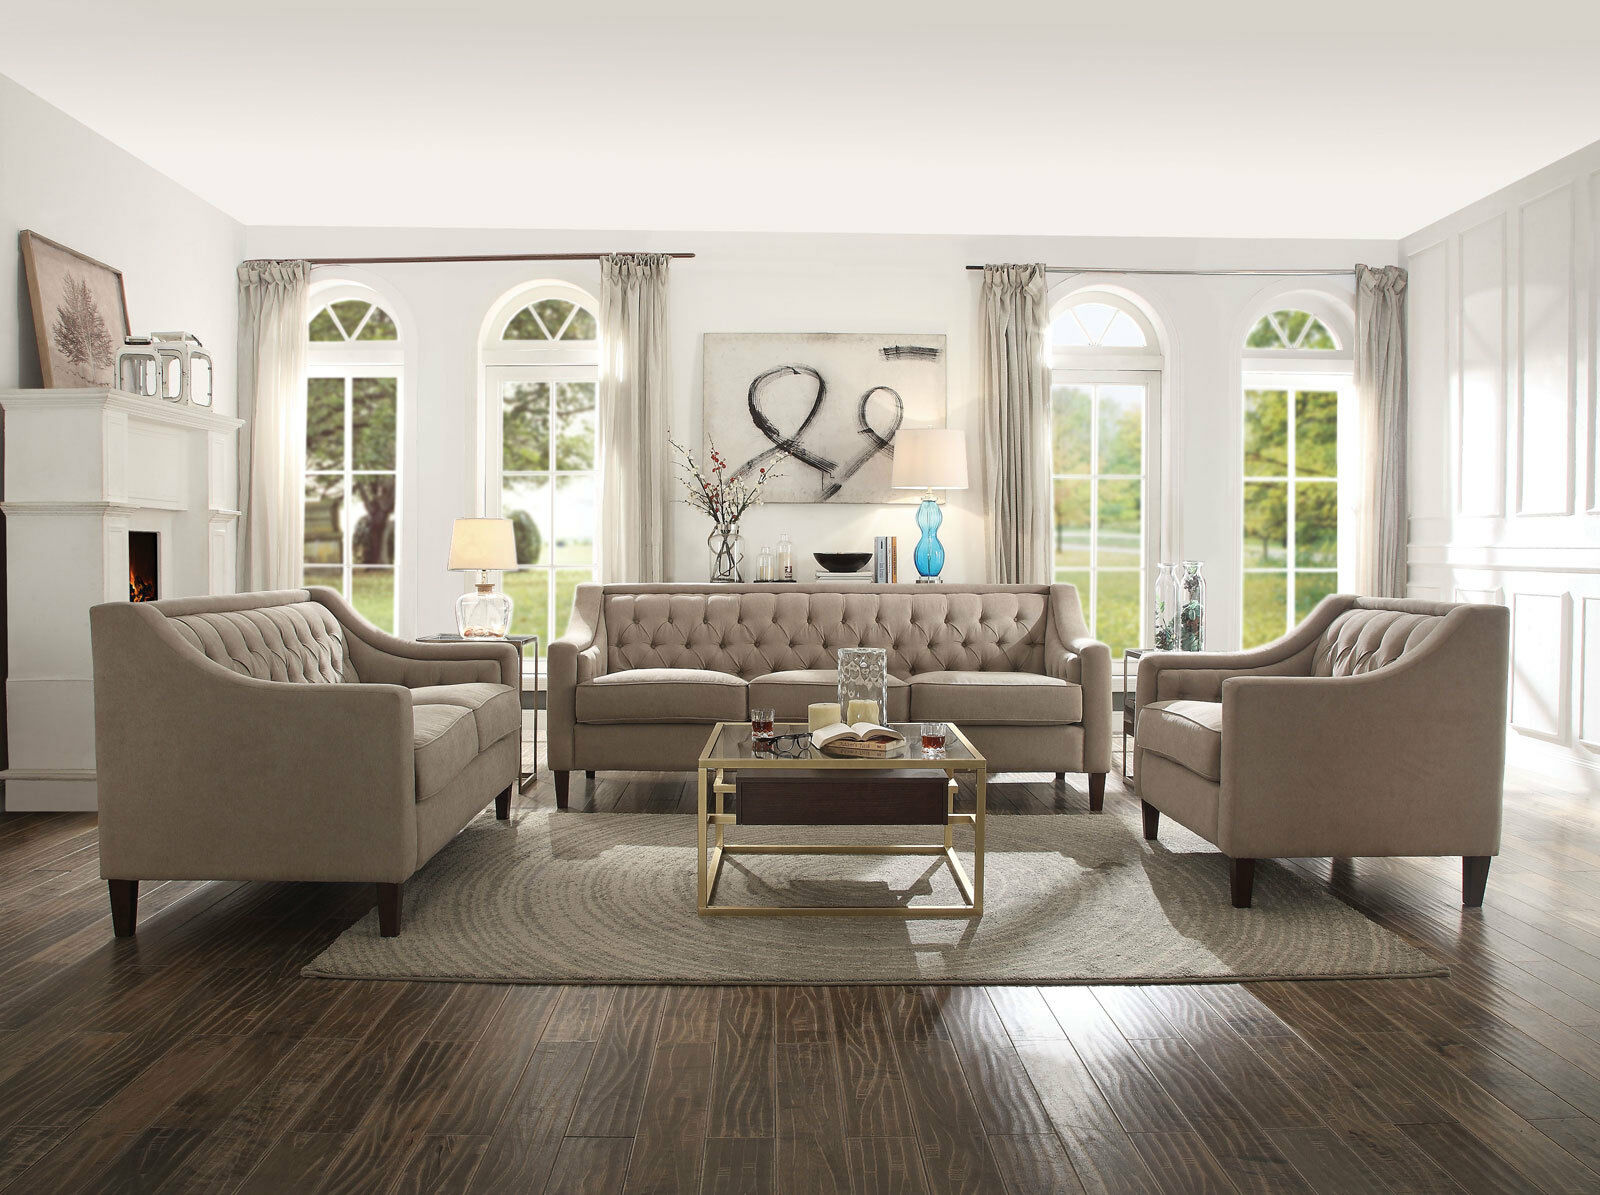 Picture of: Modern 3 Piece Living Room Couch Set Tiendamia Com